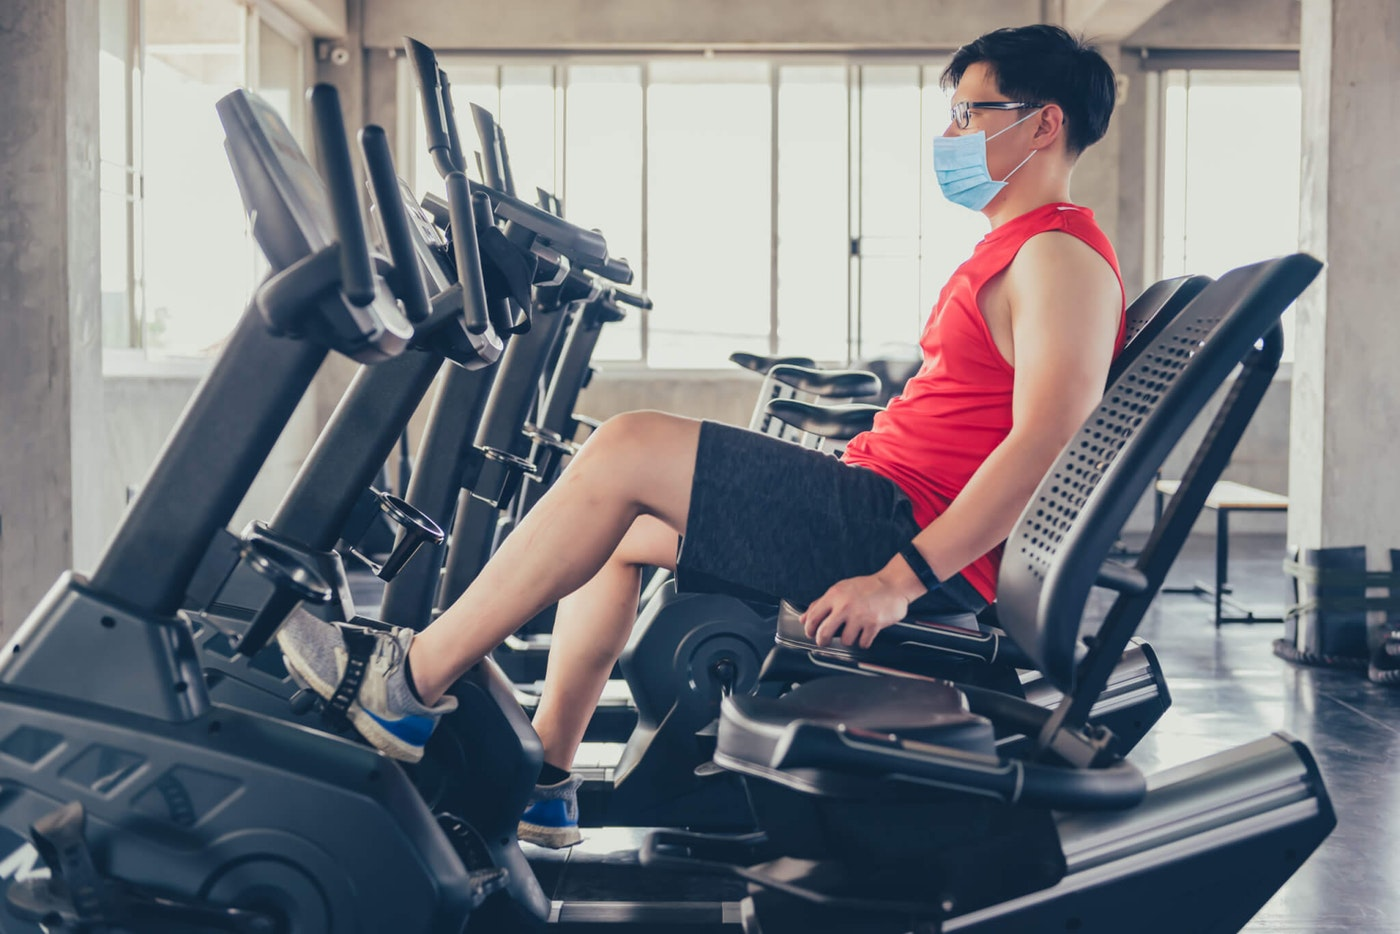 A man sits at an exercise bike at a gym. Social distancing and wellness are at the top of mind when it comes to reopening Michigan during COVID-19. (Shutterstock)